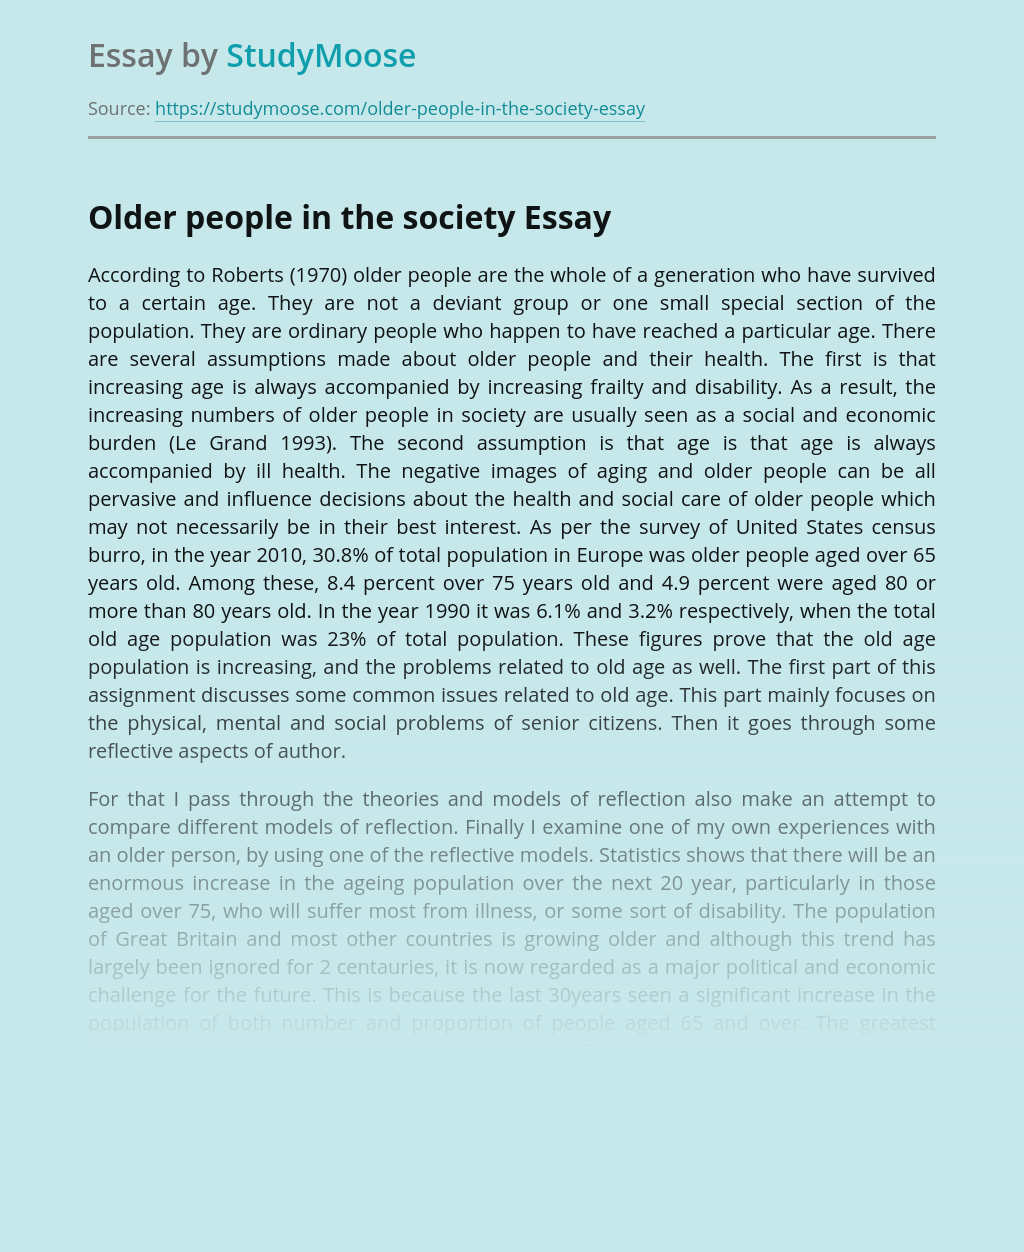 Older people in the society